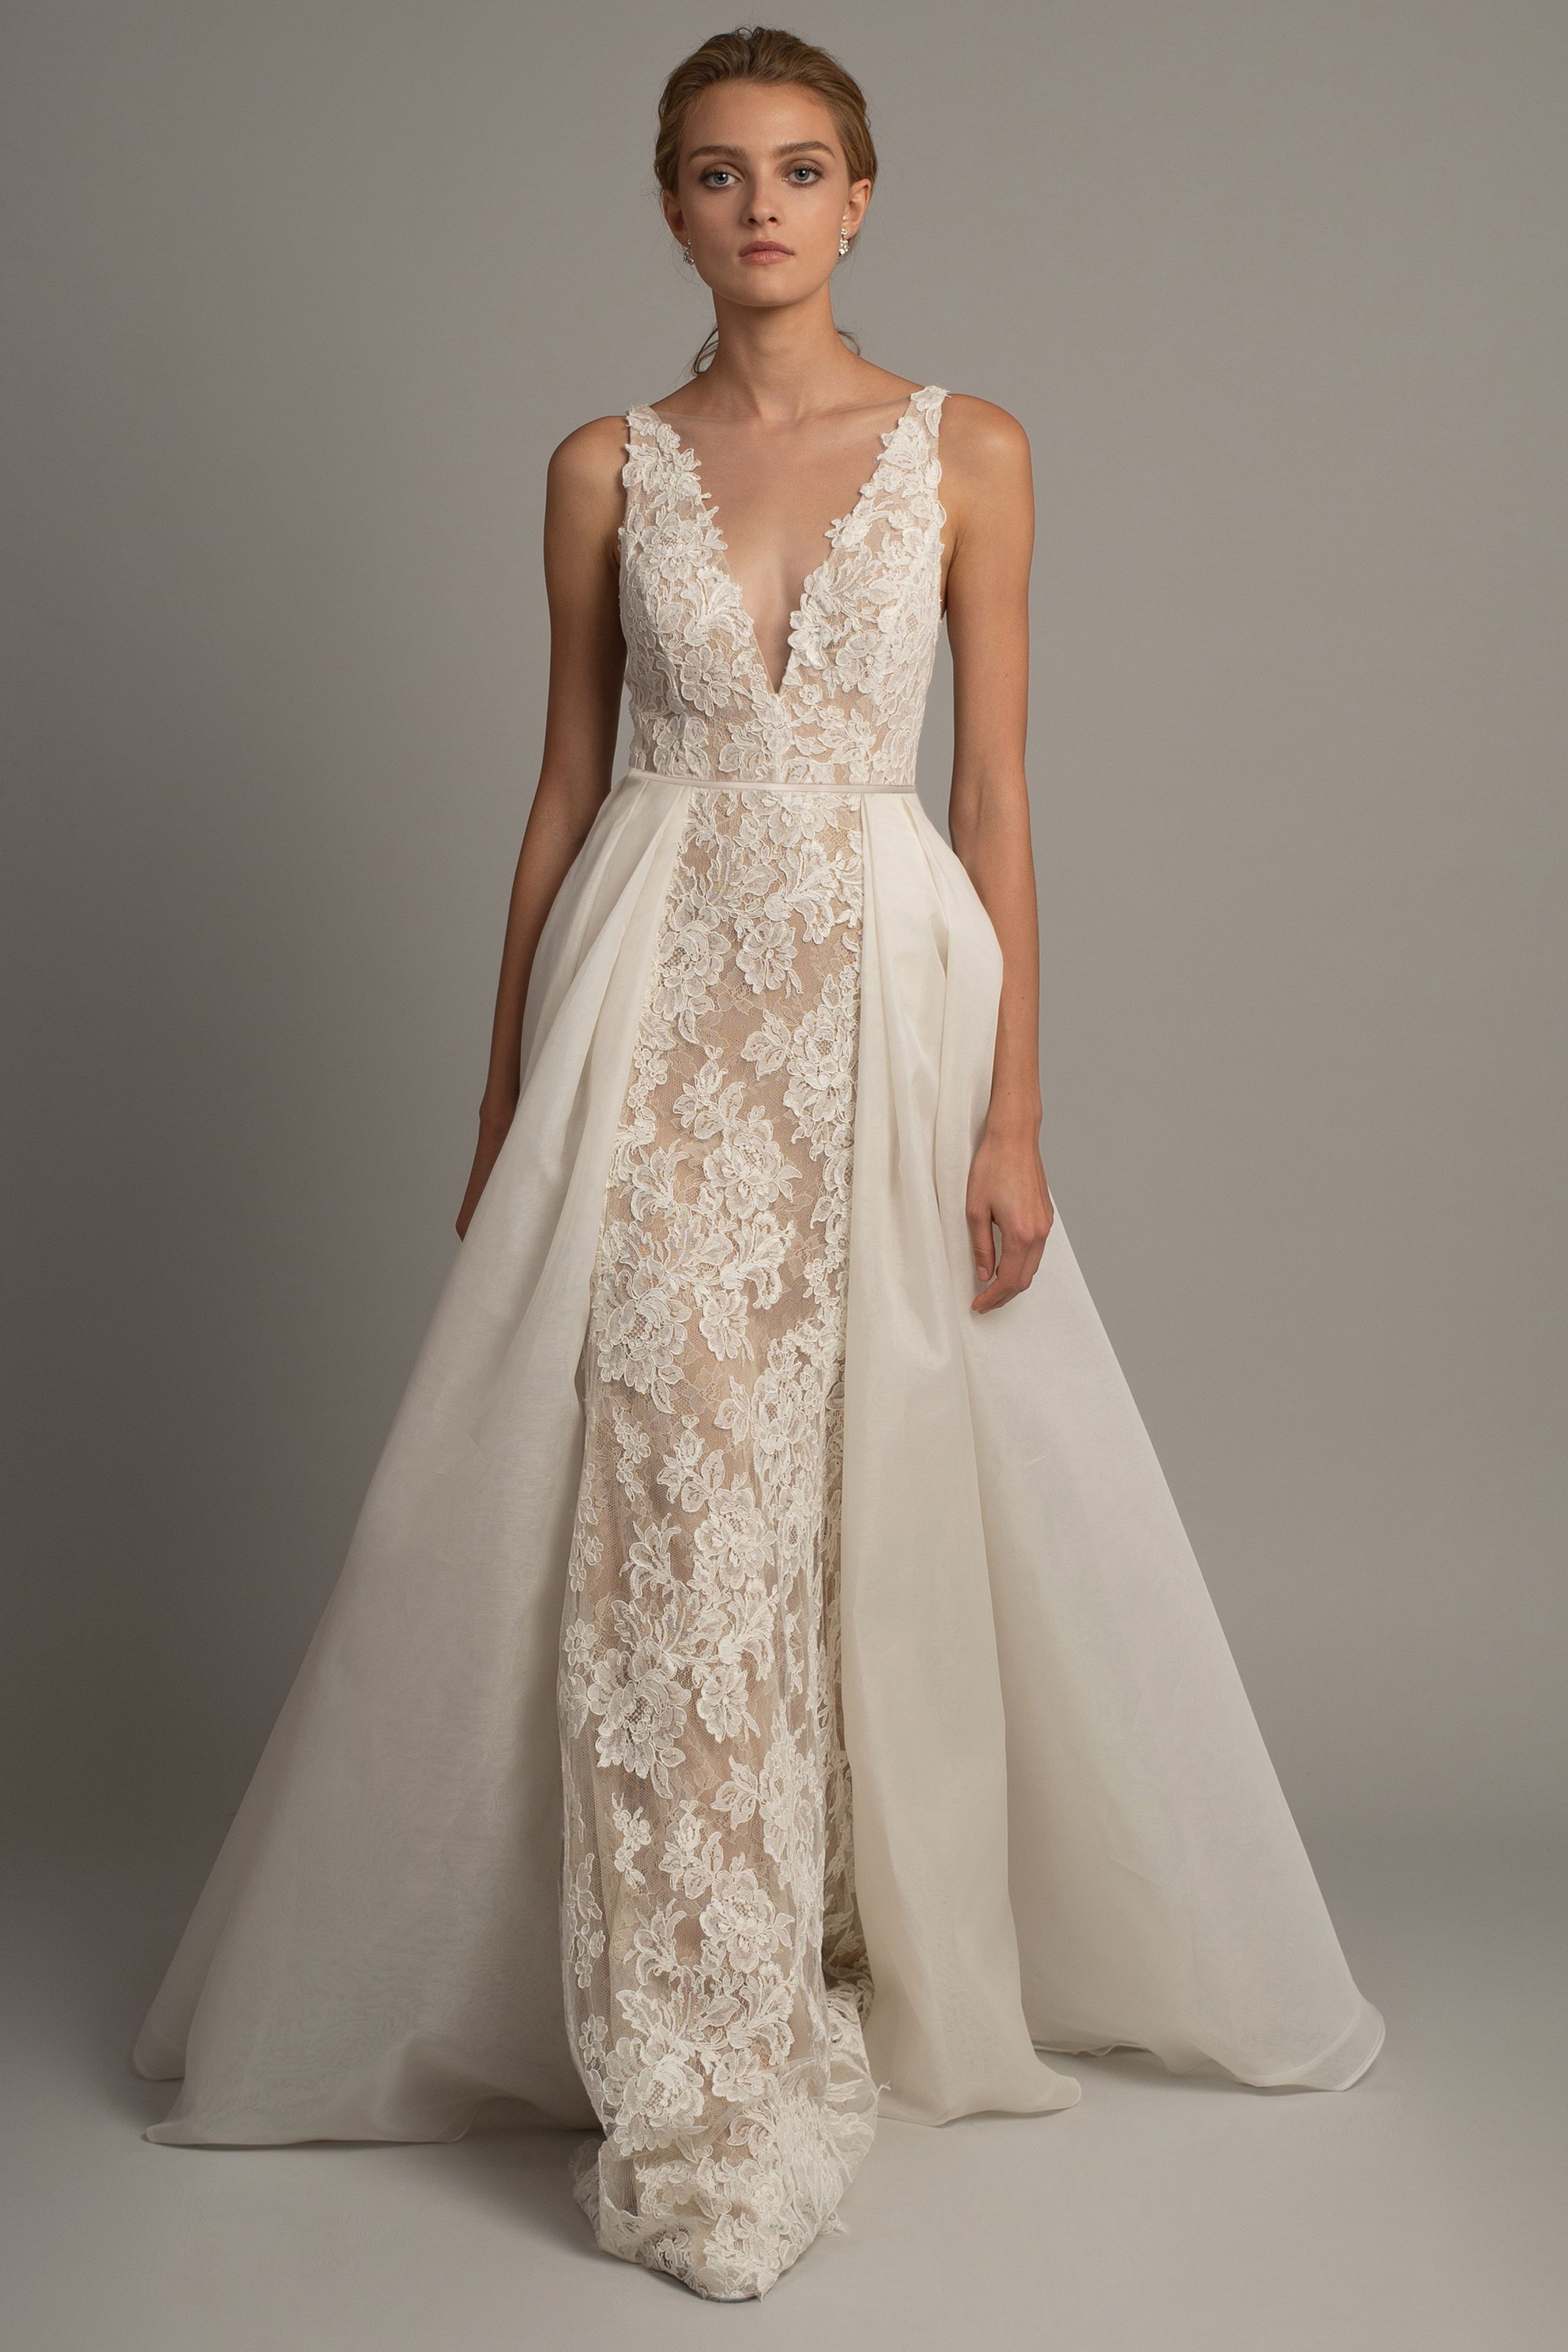 7047729ed5fa Add a little Drama with The detachable Darcy skirt. 'Darcy' is an ...